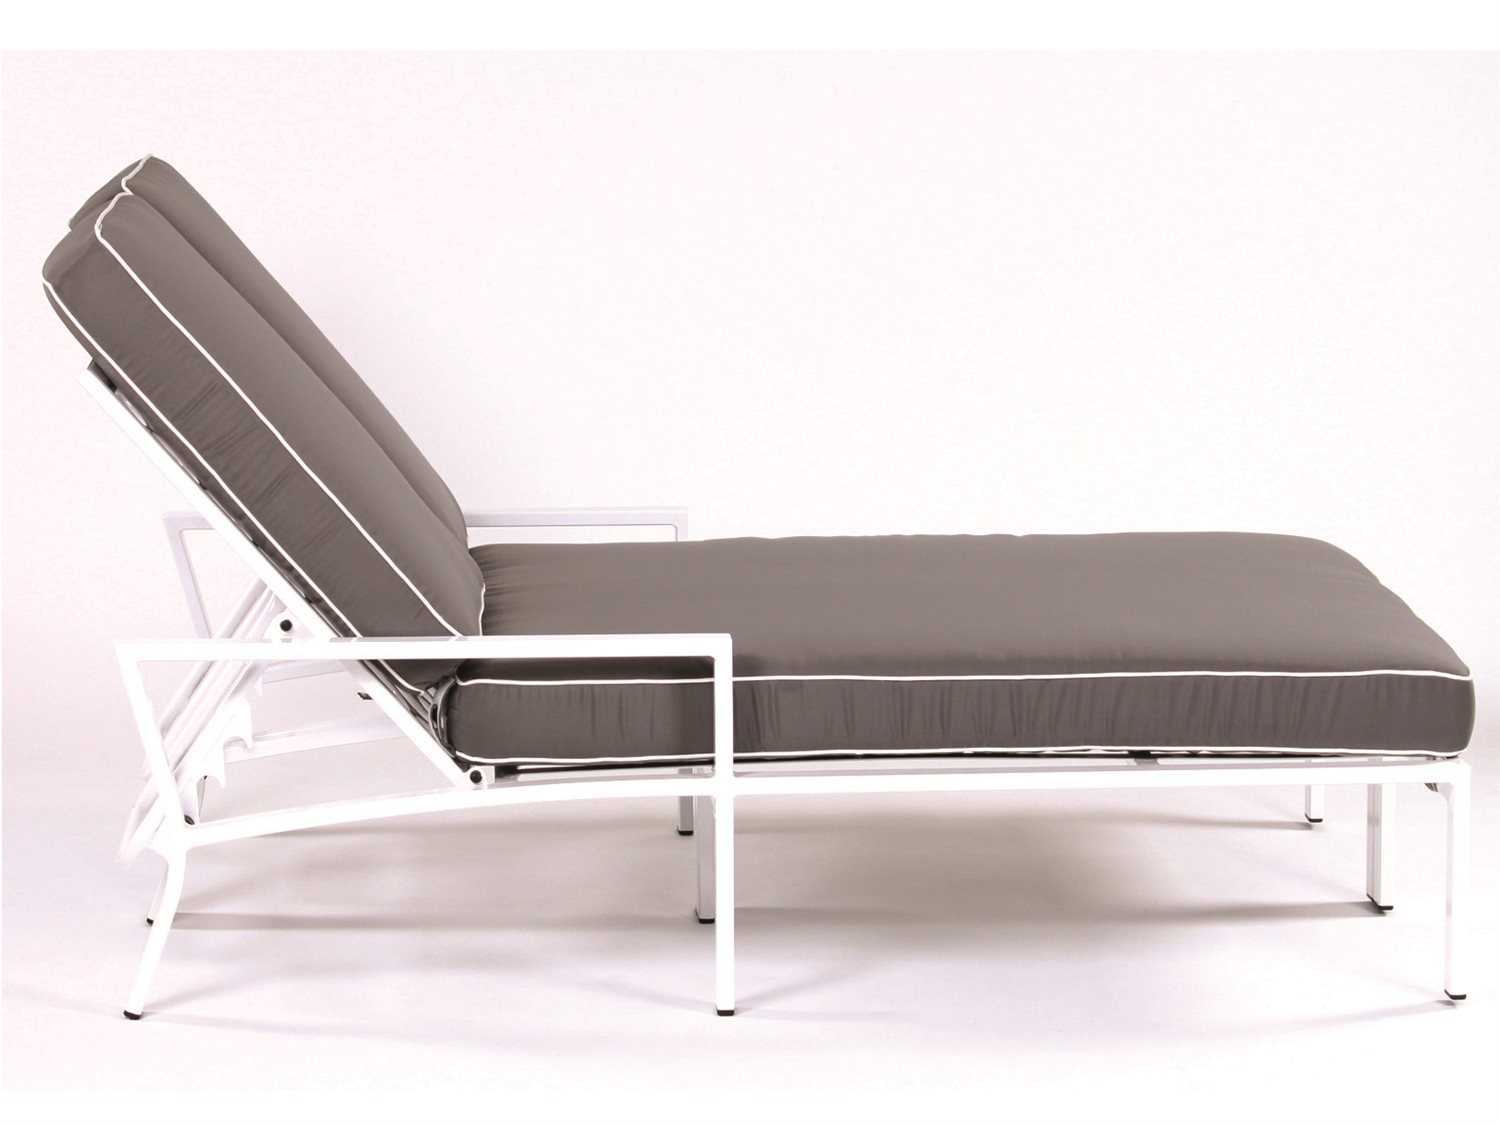 Koverton parkview cast aluminum double chaise lounge k for Chaise lounge aluminum